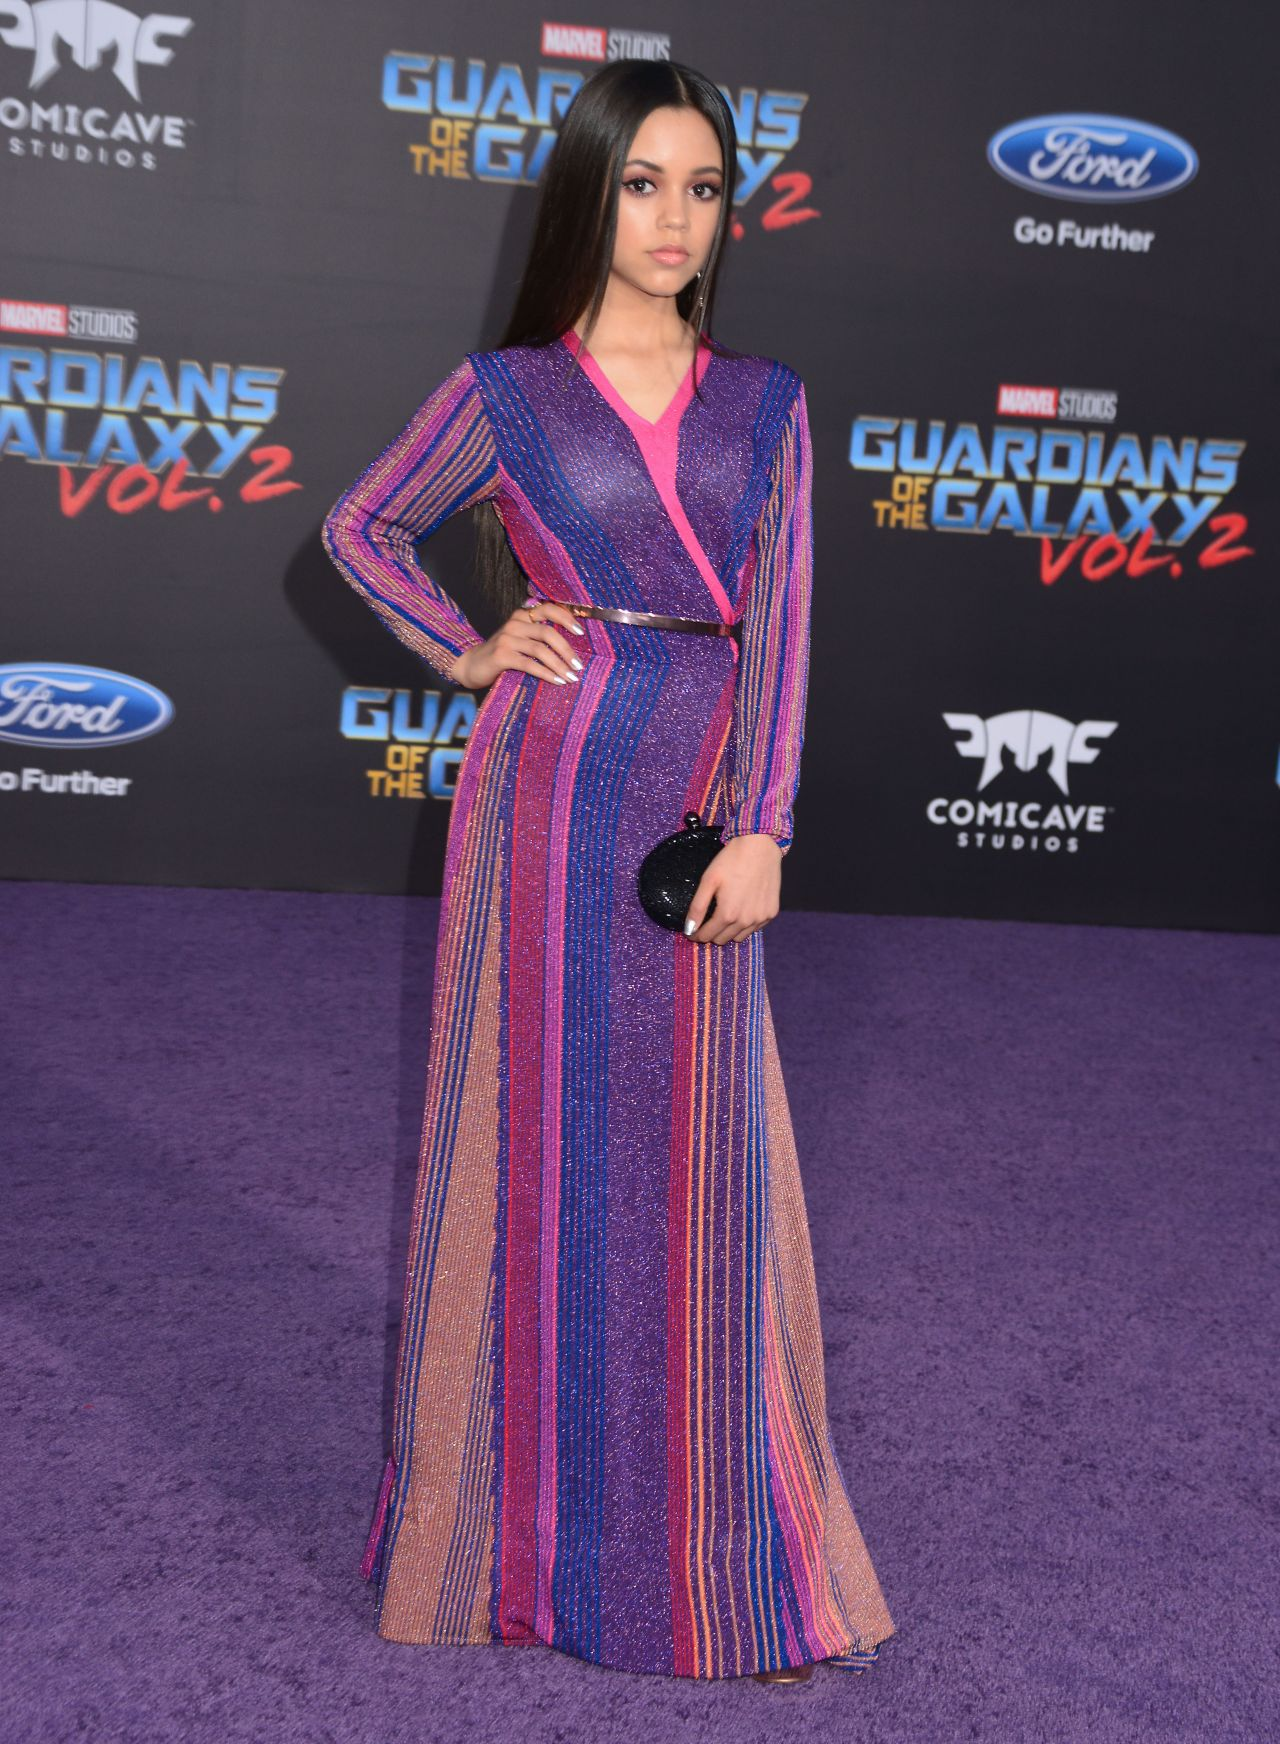 Jenna Ortega - Guardians Of The Galaxy Vol 2 Premiere In Los Angeles-4679